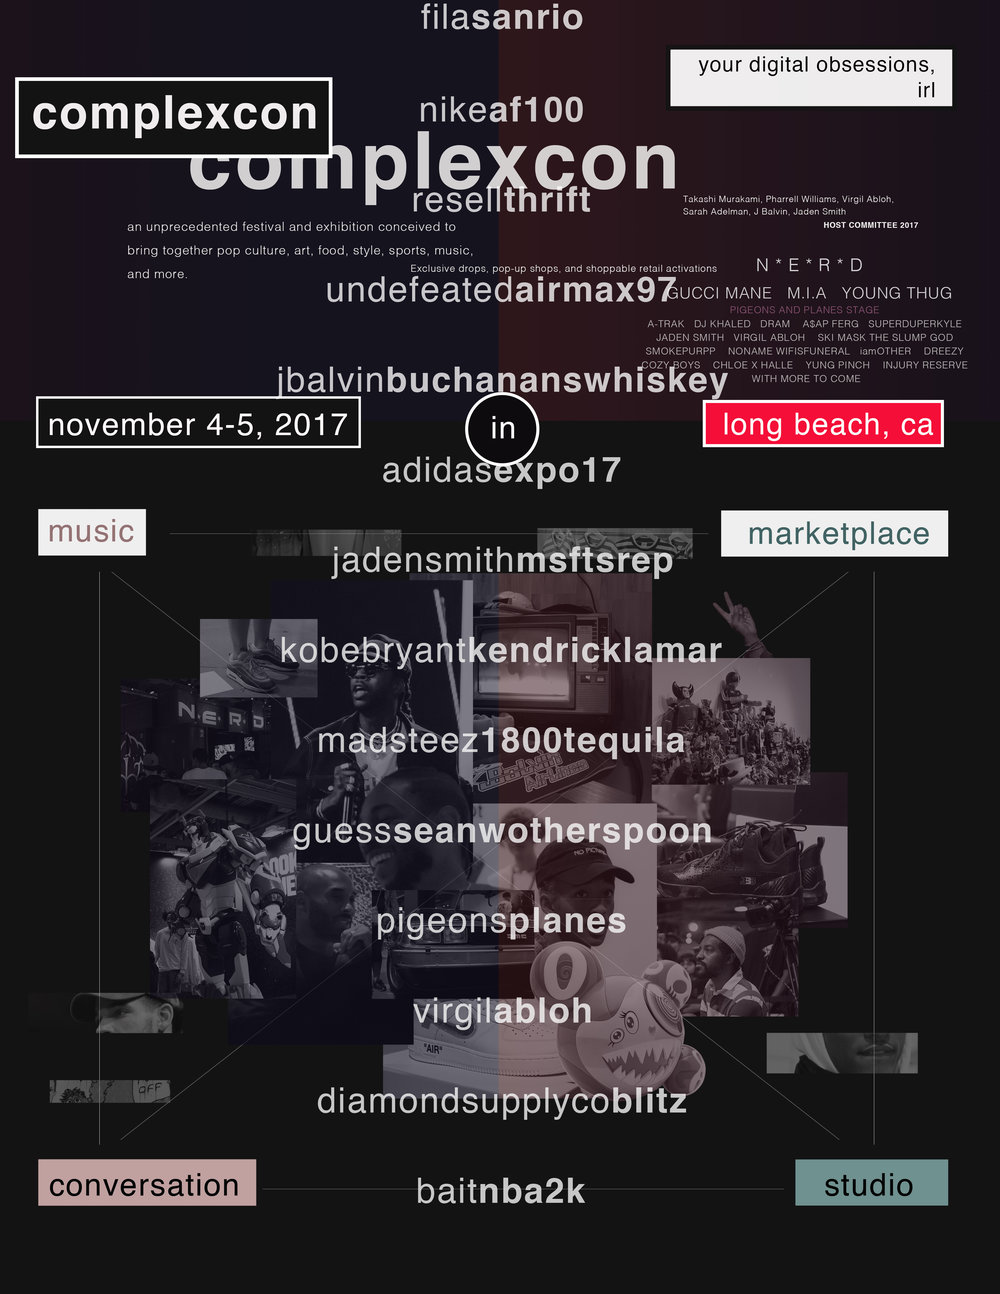 complexcon 2017 poster. (katherine mccoy style)